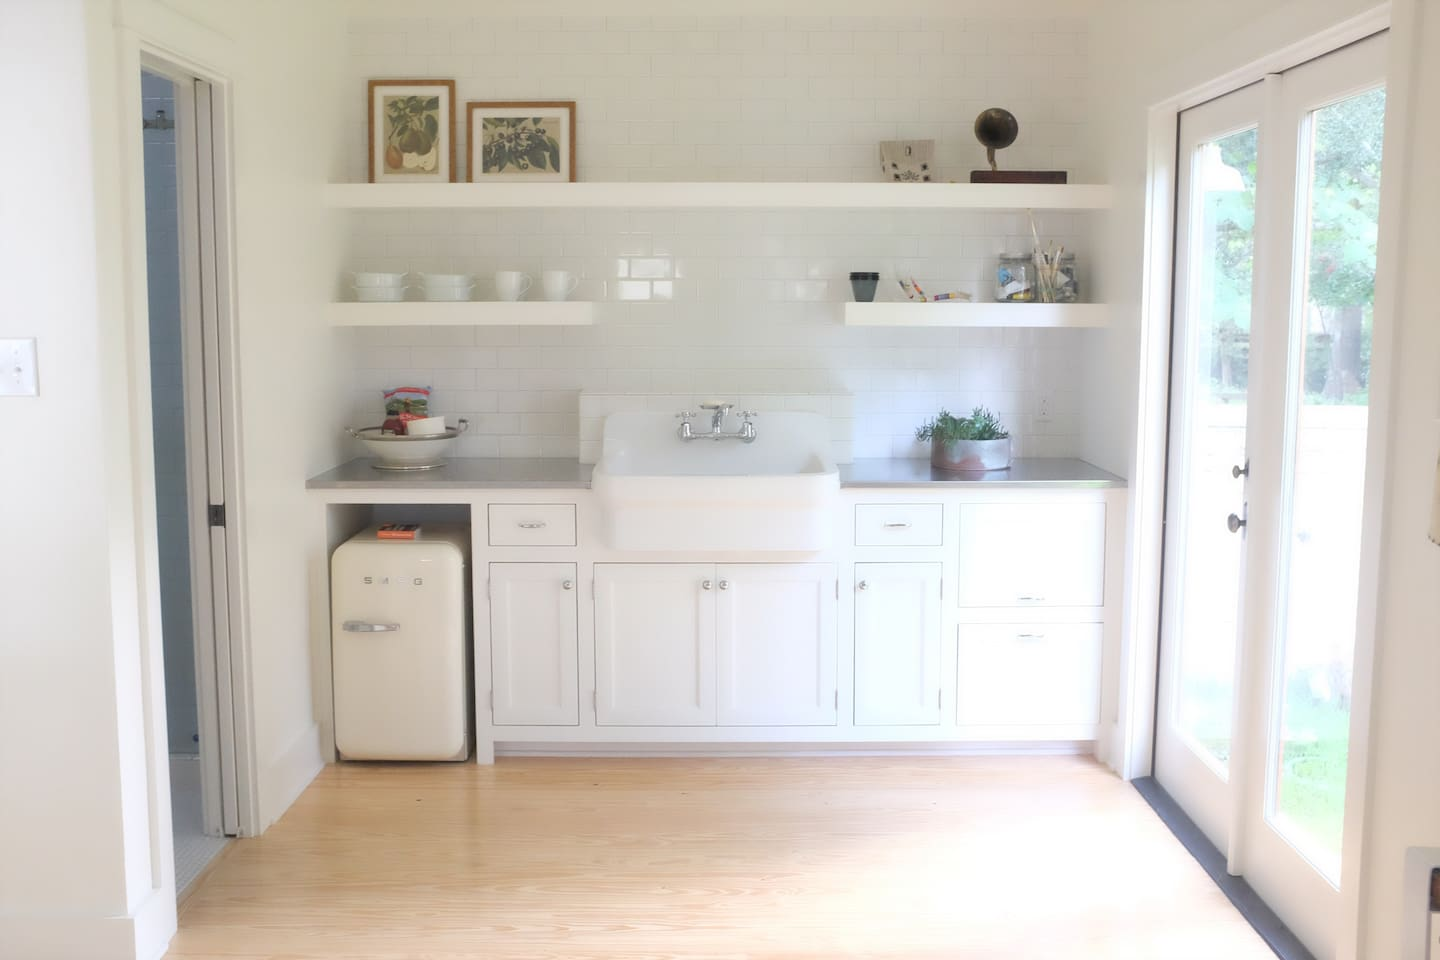 -kitchenette-  farmhouse sink with disposal, mini fridge, french press, electric kettle, and microwave